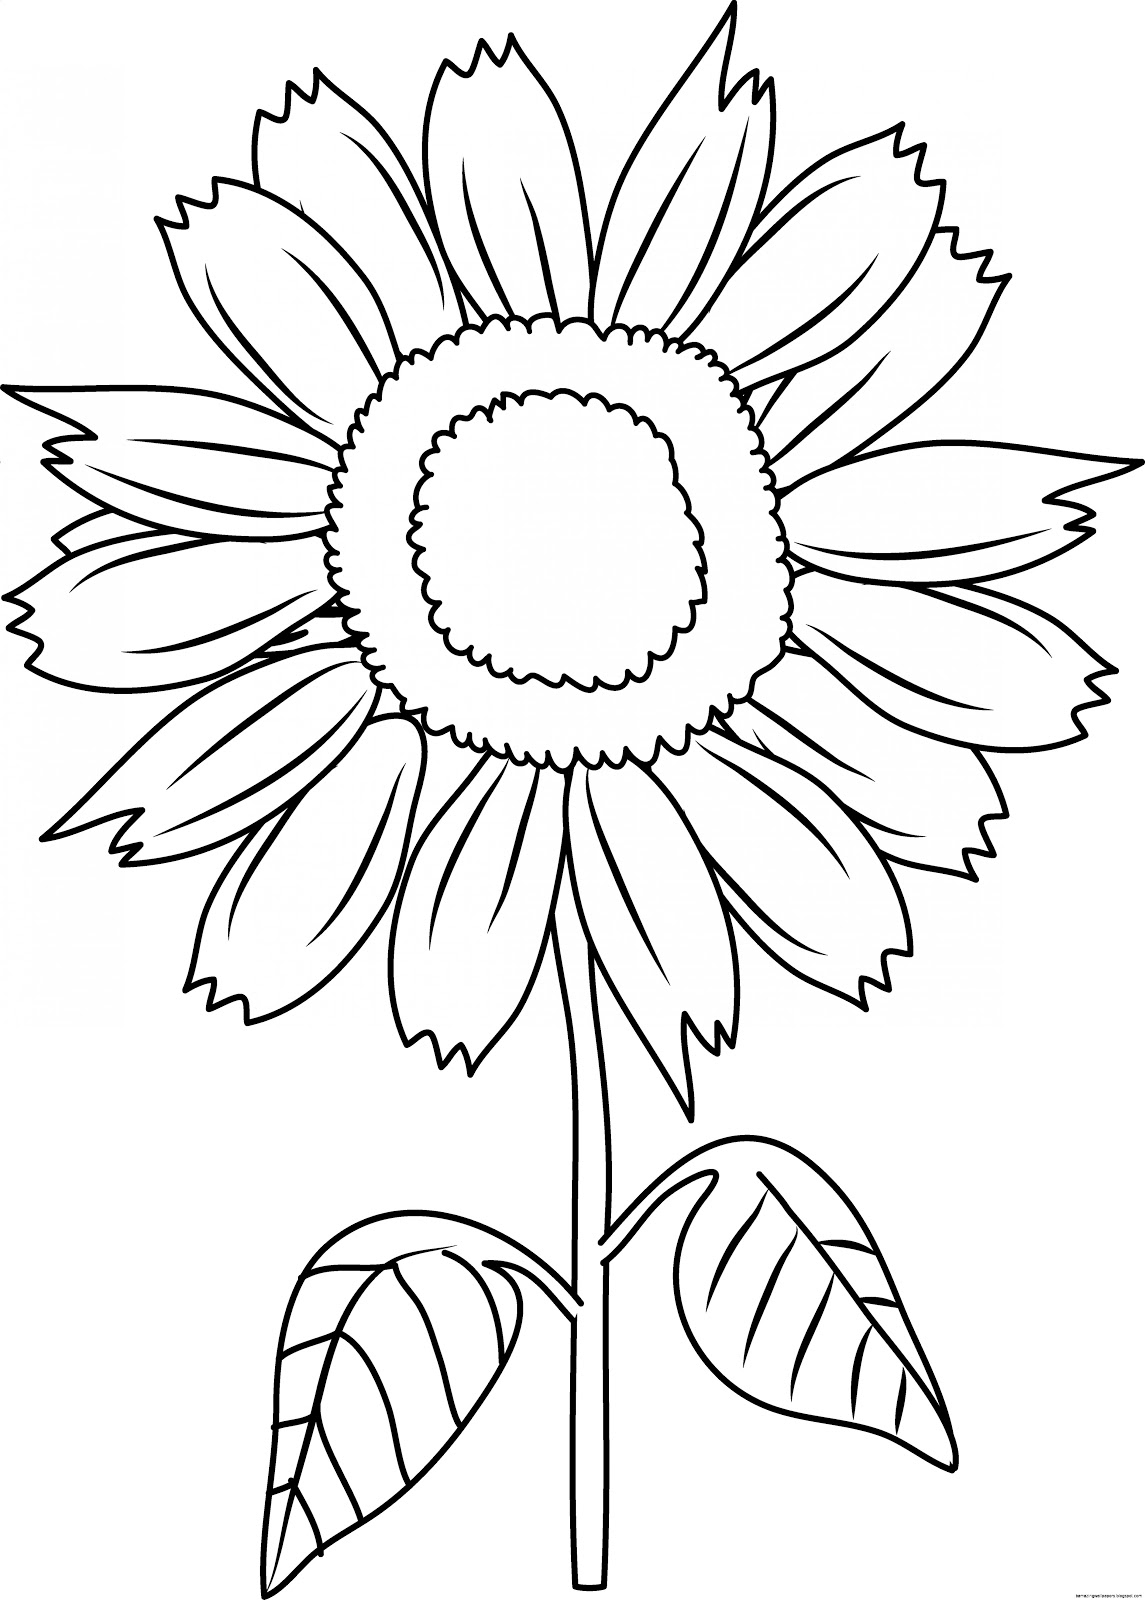 outline of a sunflower outline products archives colors for earth llc of a sunflower outline